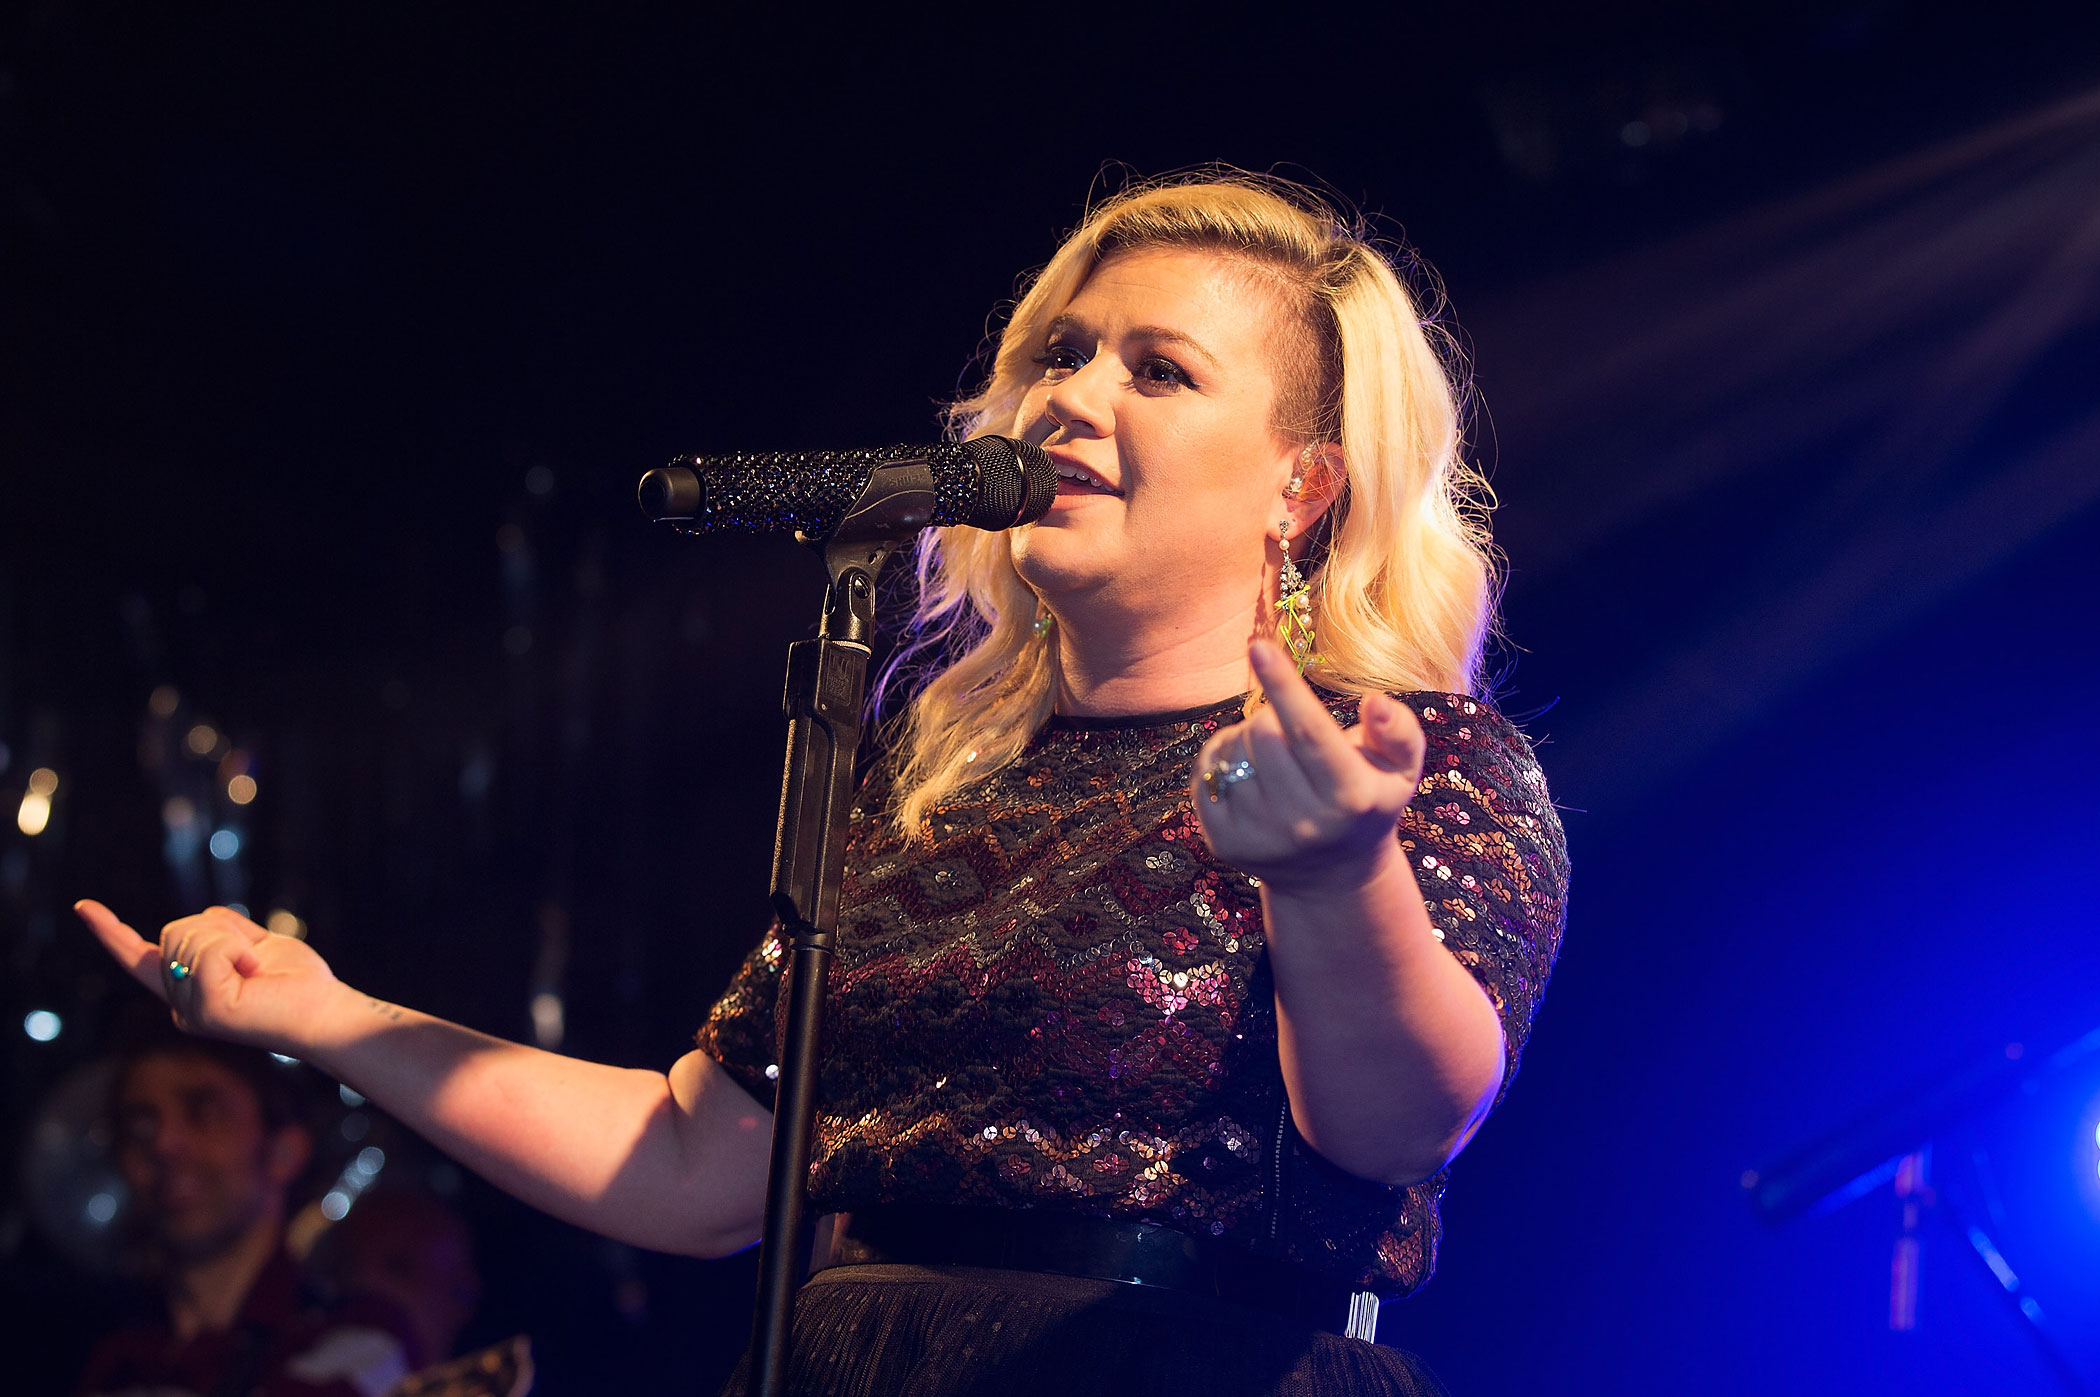 Kelly Clarkson performs on stage at G-A-Y on Feb. 14, 2015 in London, England.